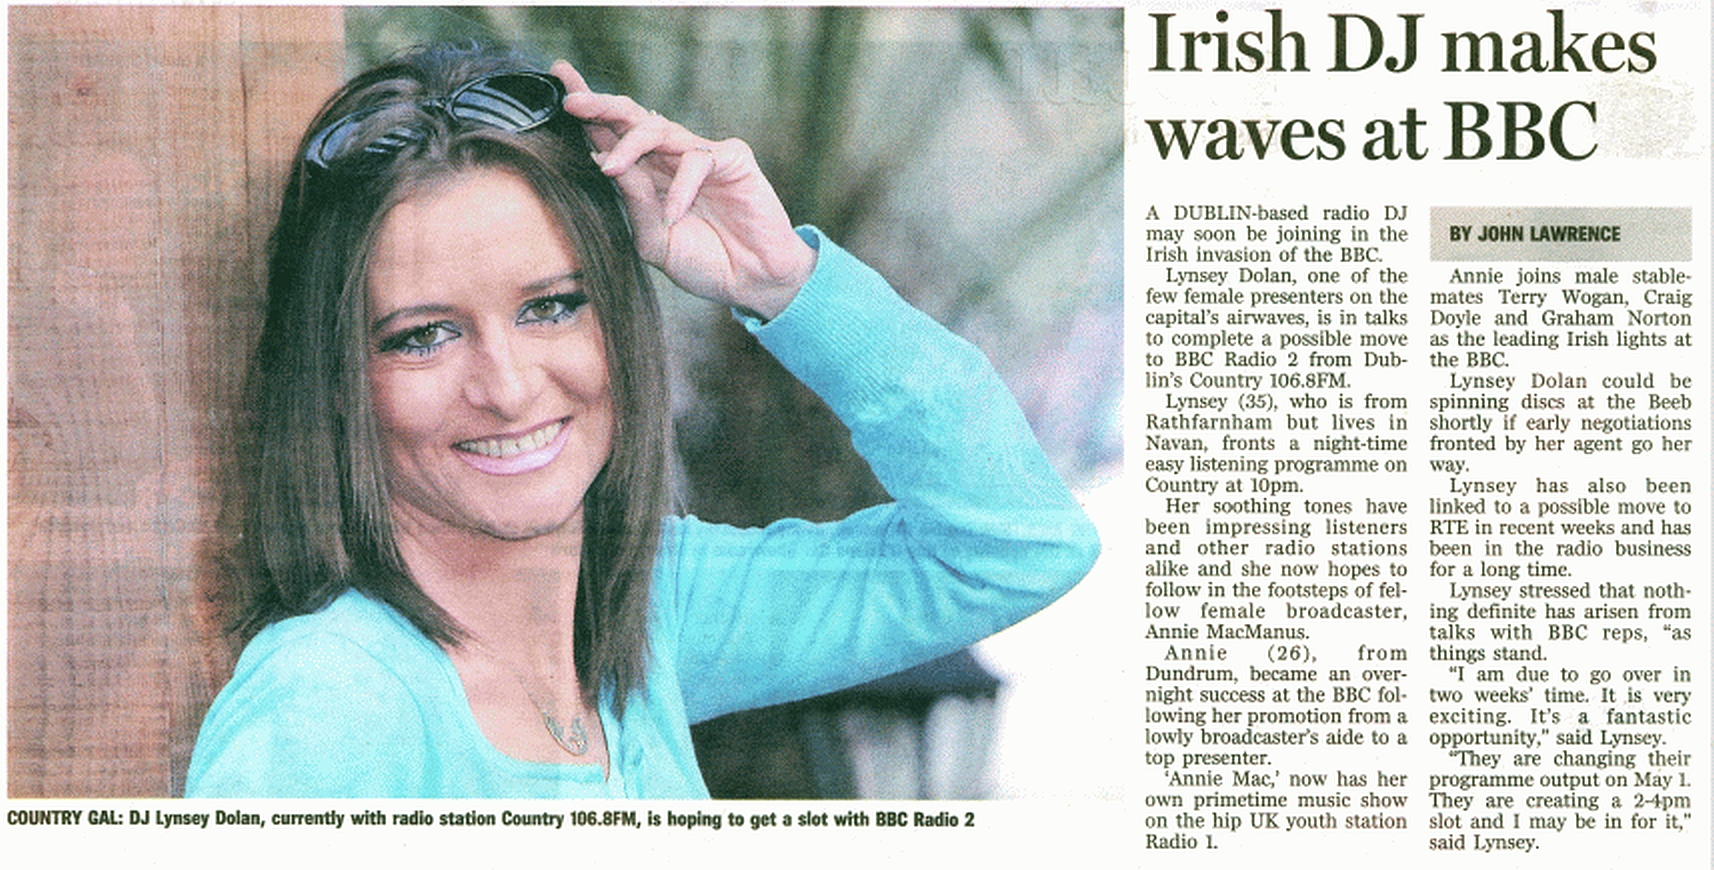 Evening Herald - Irish DJ makes waves at the BBC